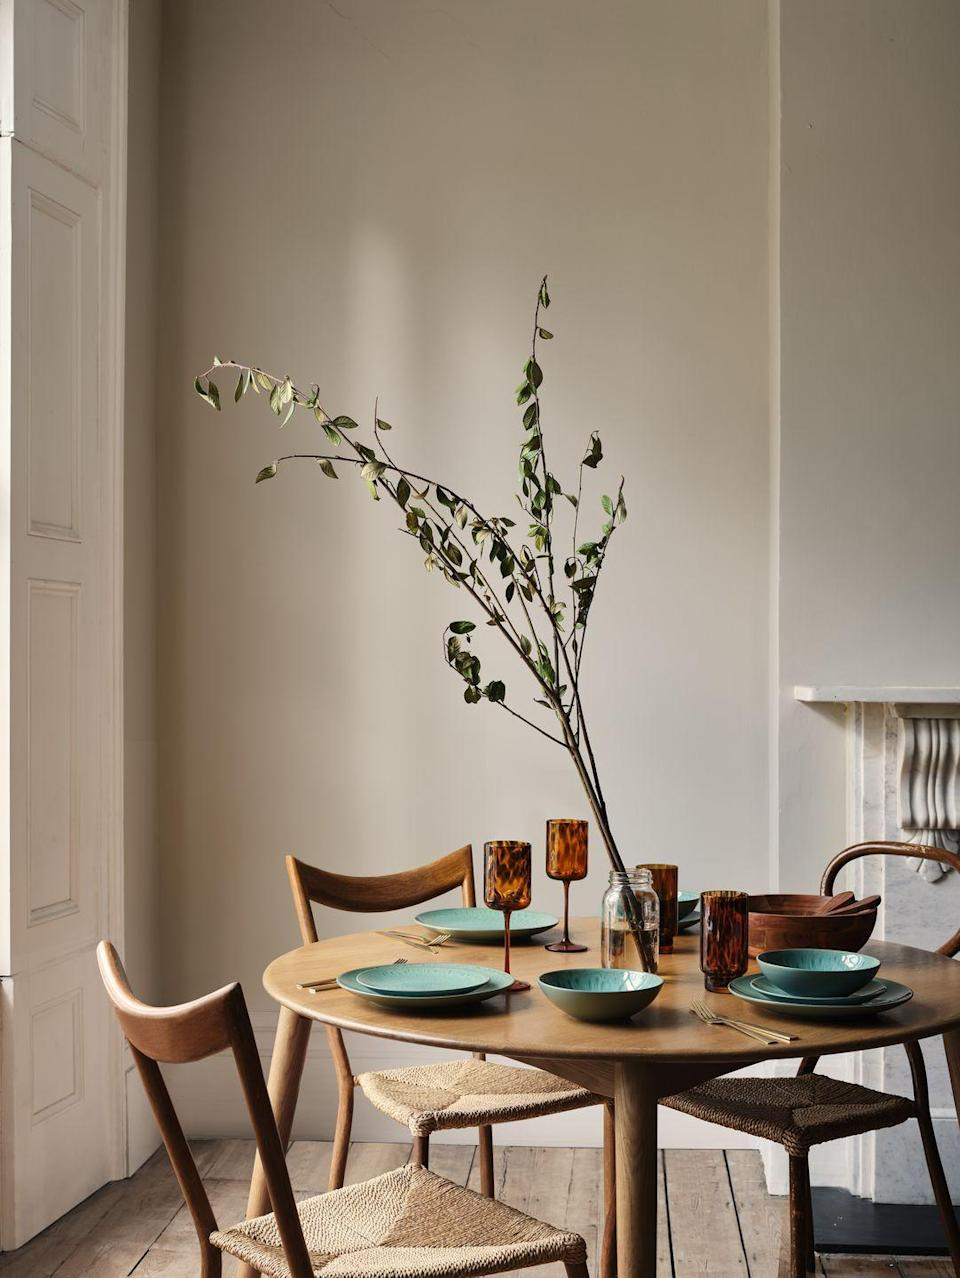 """<p>The key to hosting a memorable gathering is to pay close attention to those small details. Set the scene this autumn with George Home's range of animal print glasses (£7), acacia wood serving bowls (£10) and affordable cutlery sets (£12). </p><p><a class=""""link rapid-noclick-resp"""" href=""""https://direct.asda.com/george/home/D26,default,sc.html"""" rel=""""nofollow noopener"""" target=""""_blank"""" data-ylk=""""slk:SHOP NOW"""">SHOP NOW</a></p>"""